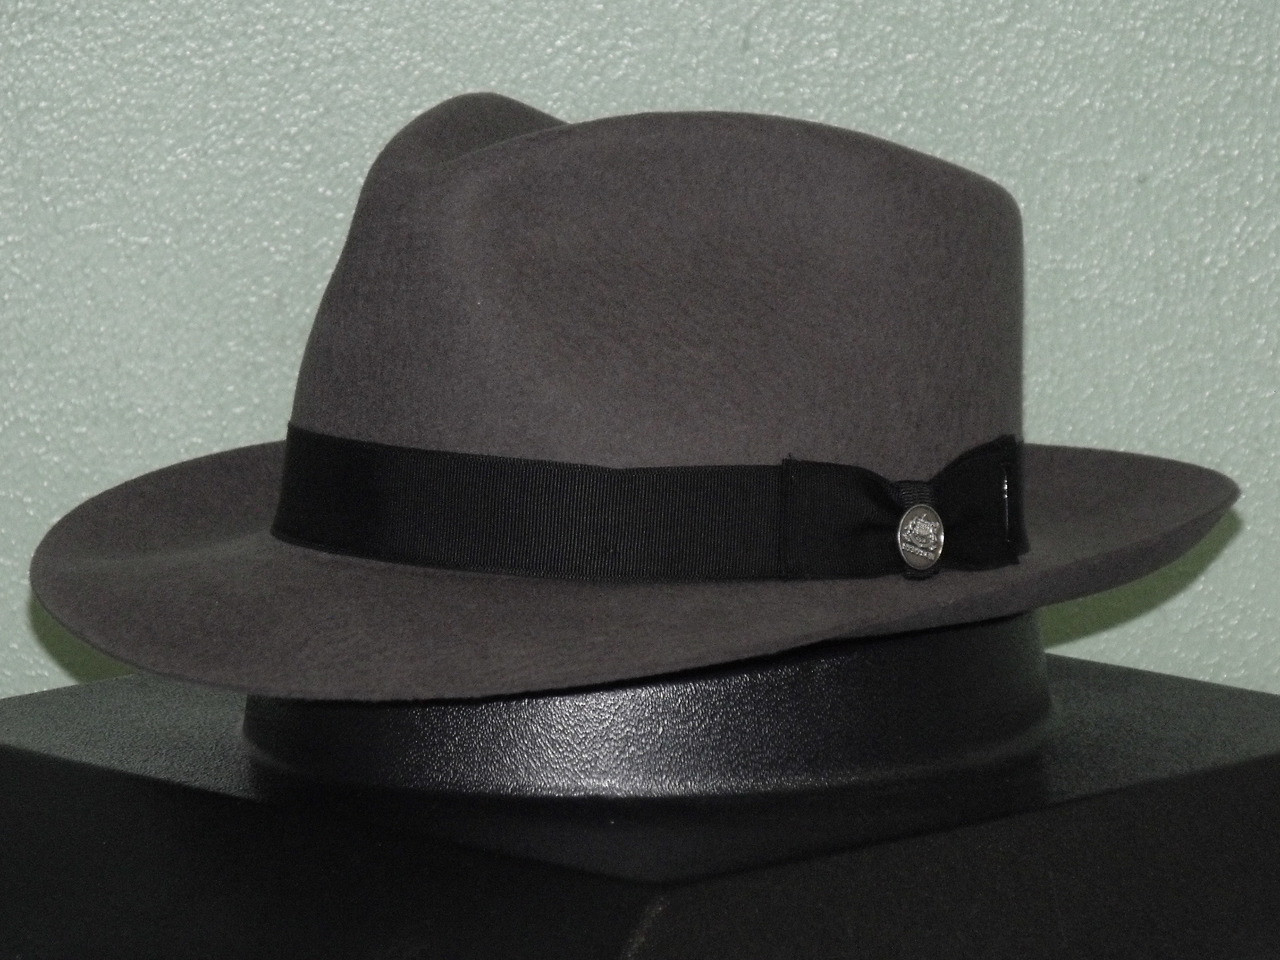 ace0a827 Stetson Chatham Wool Fedora Hat - One 2 mini Ranch